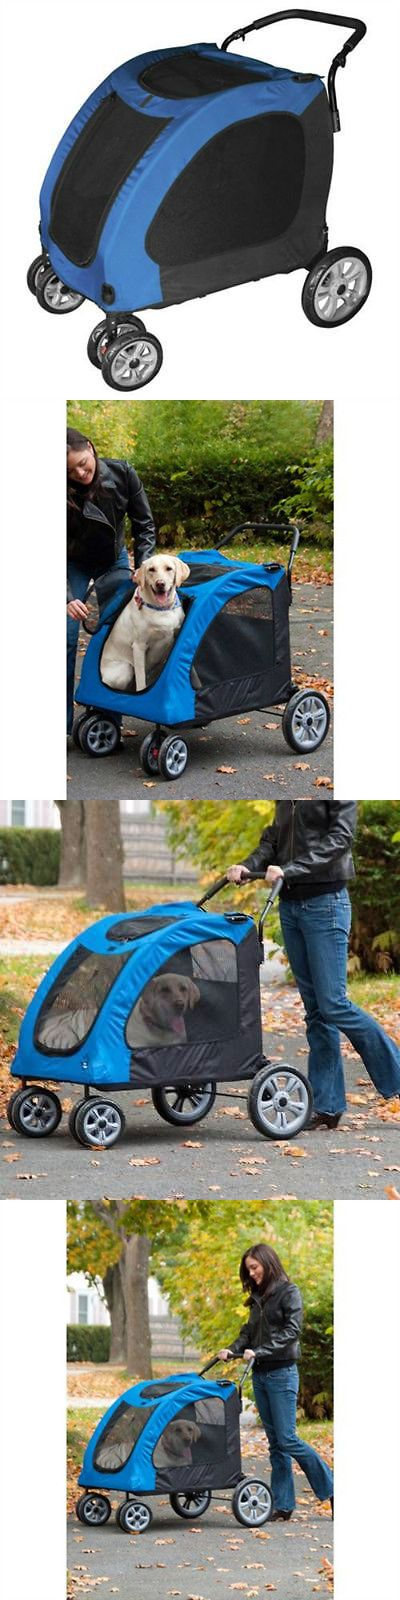 Strollers 116380: X-Large Dog Stroller Carriage Jogger Holds Up To 125 Lbs Folds Flat Pet Supplies -> BUY IT NOW ONLY: $198.95 on eBay!